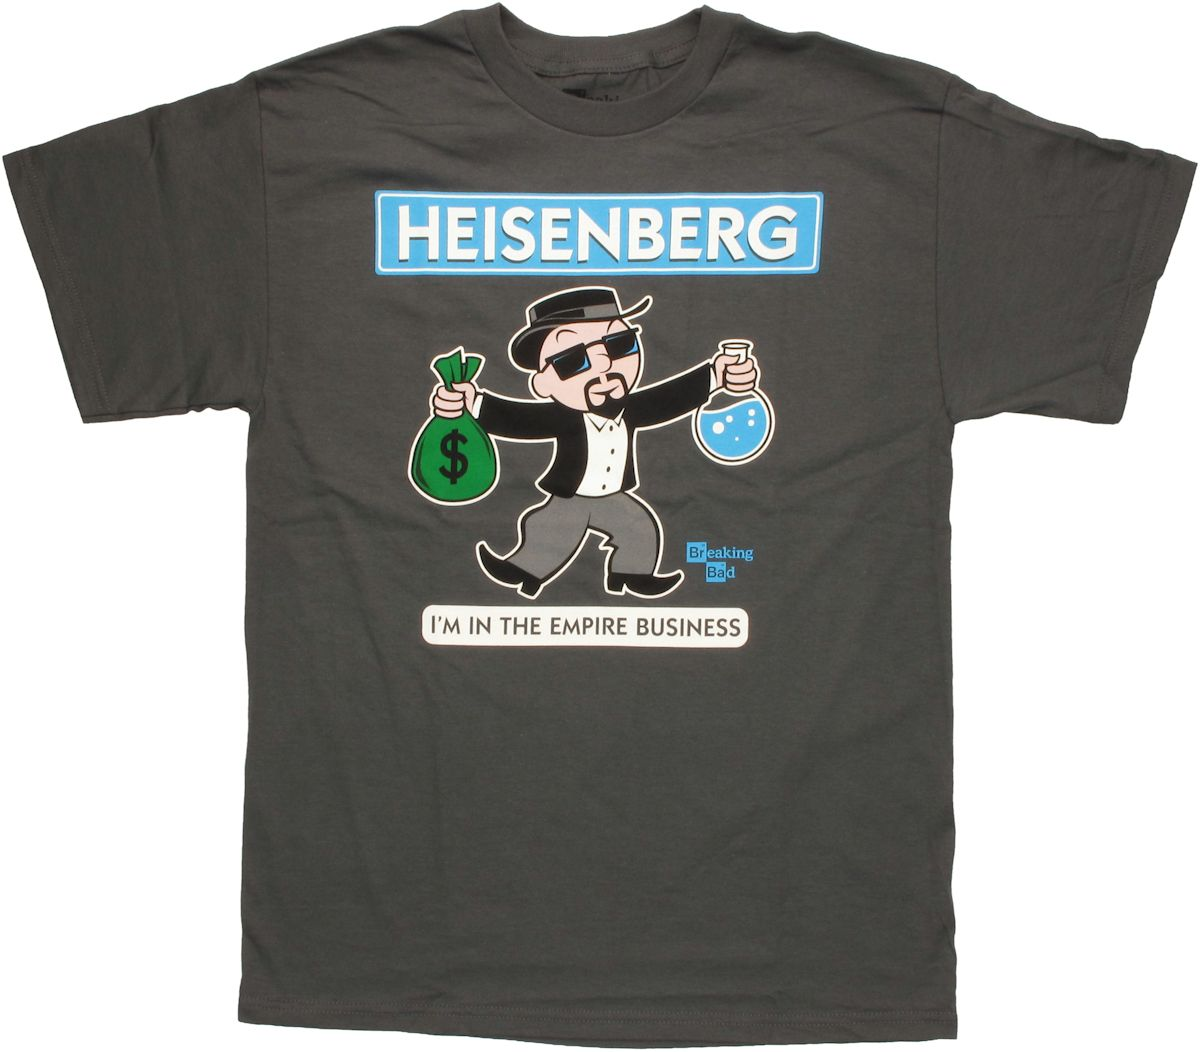 Breaking bad empire business t shirt for Make t shirts for your business